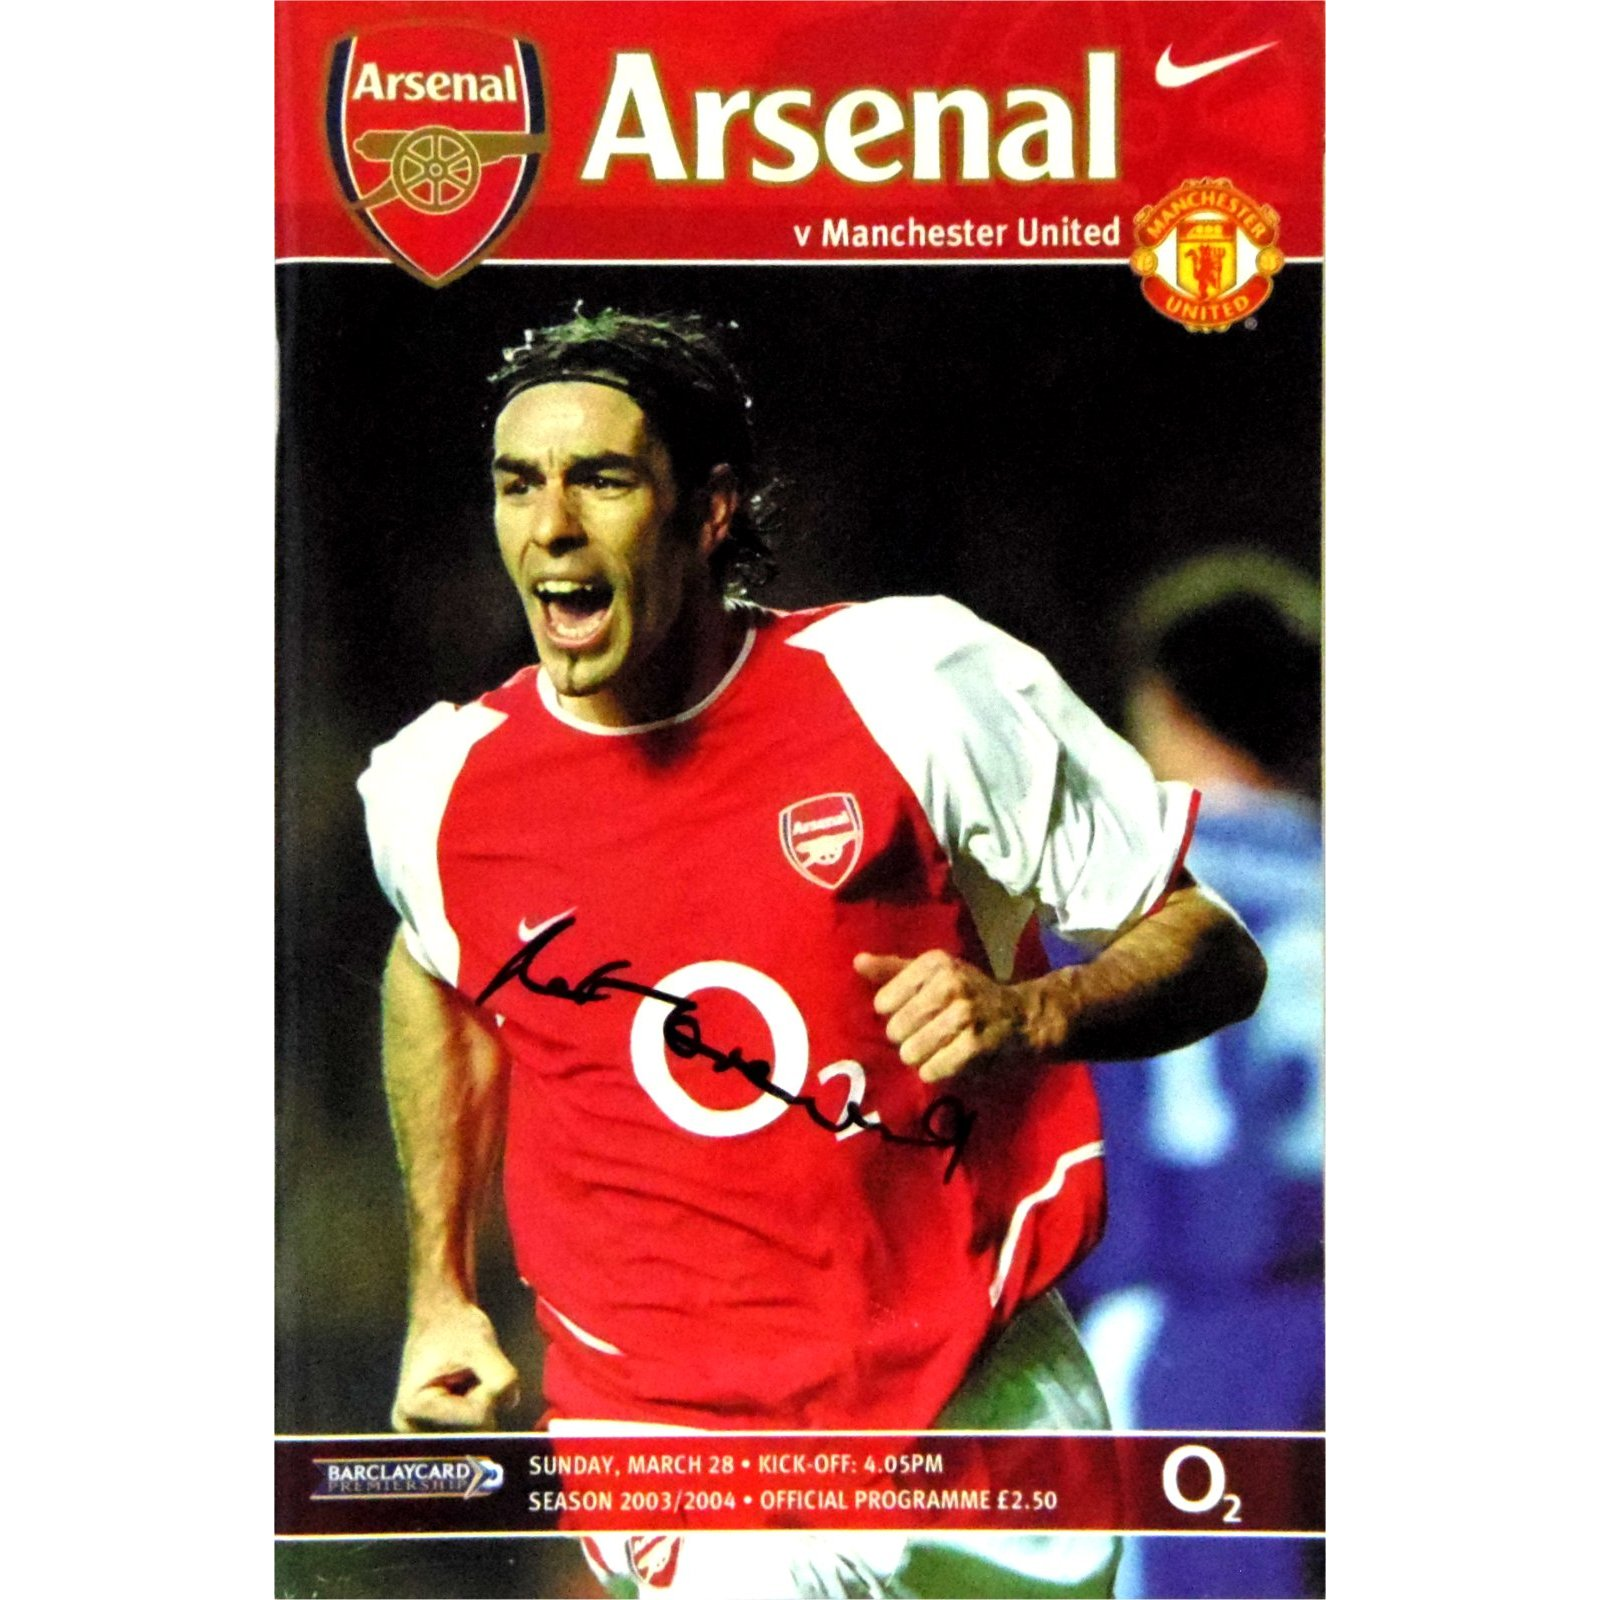 Arsenal<br>28/03/04<br>Autographed by<br>PAT CRERAND